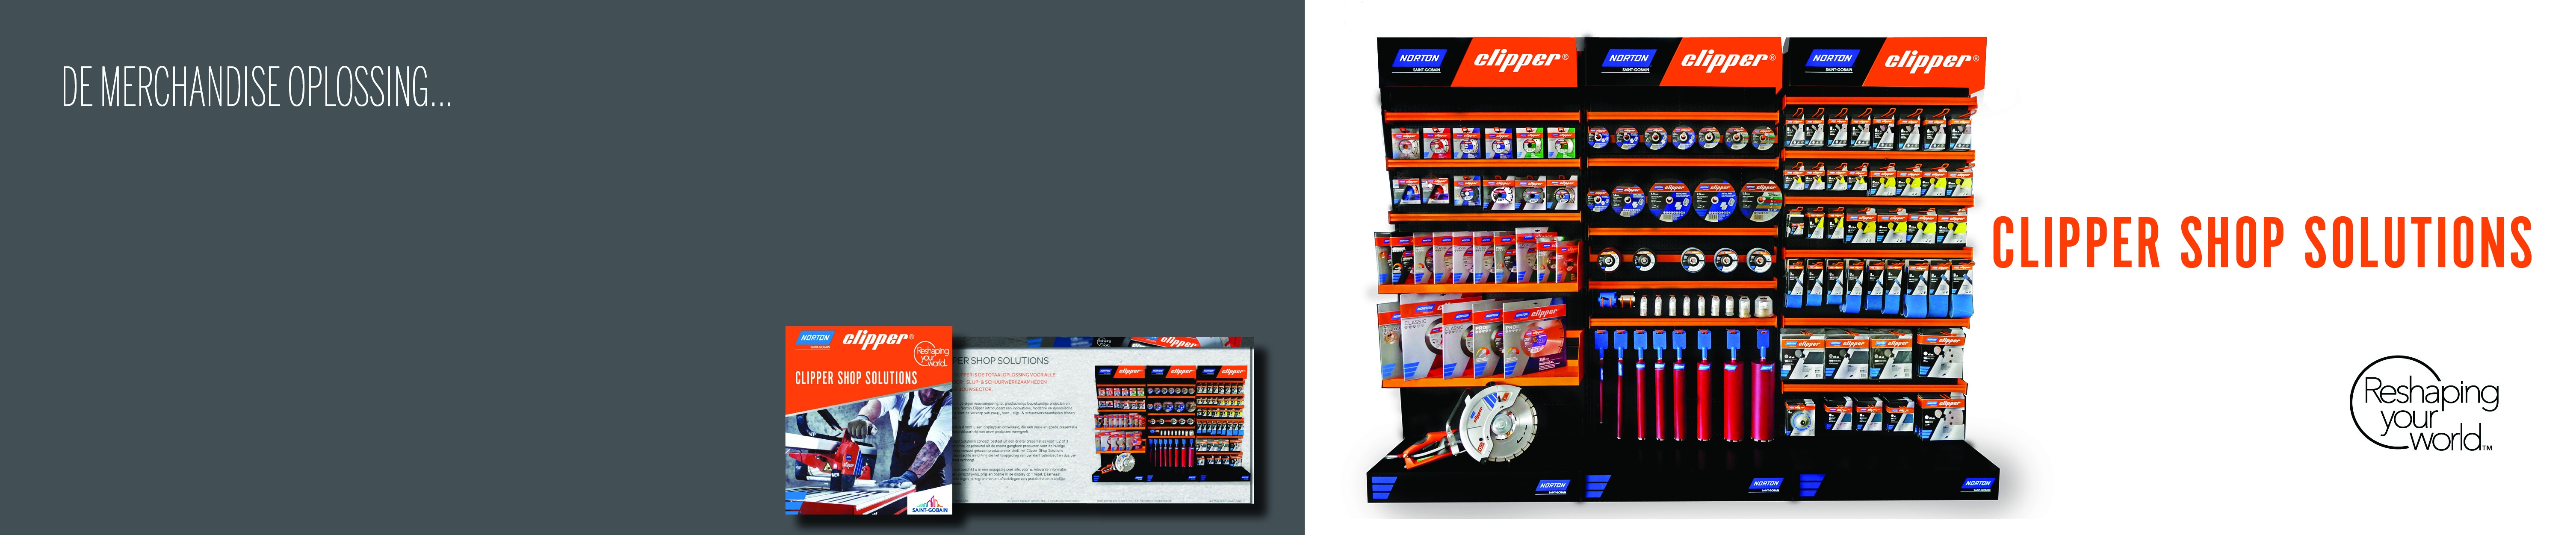 BANNER CLIPPER SHOP SOLUTIONSV3-3